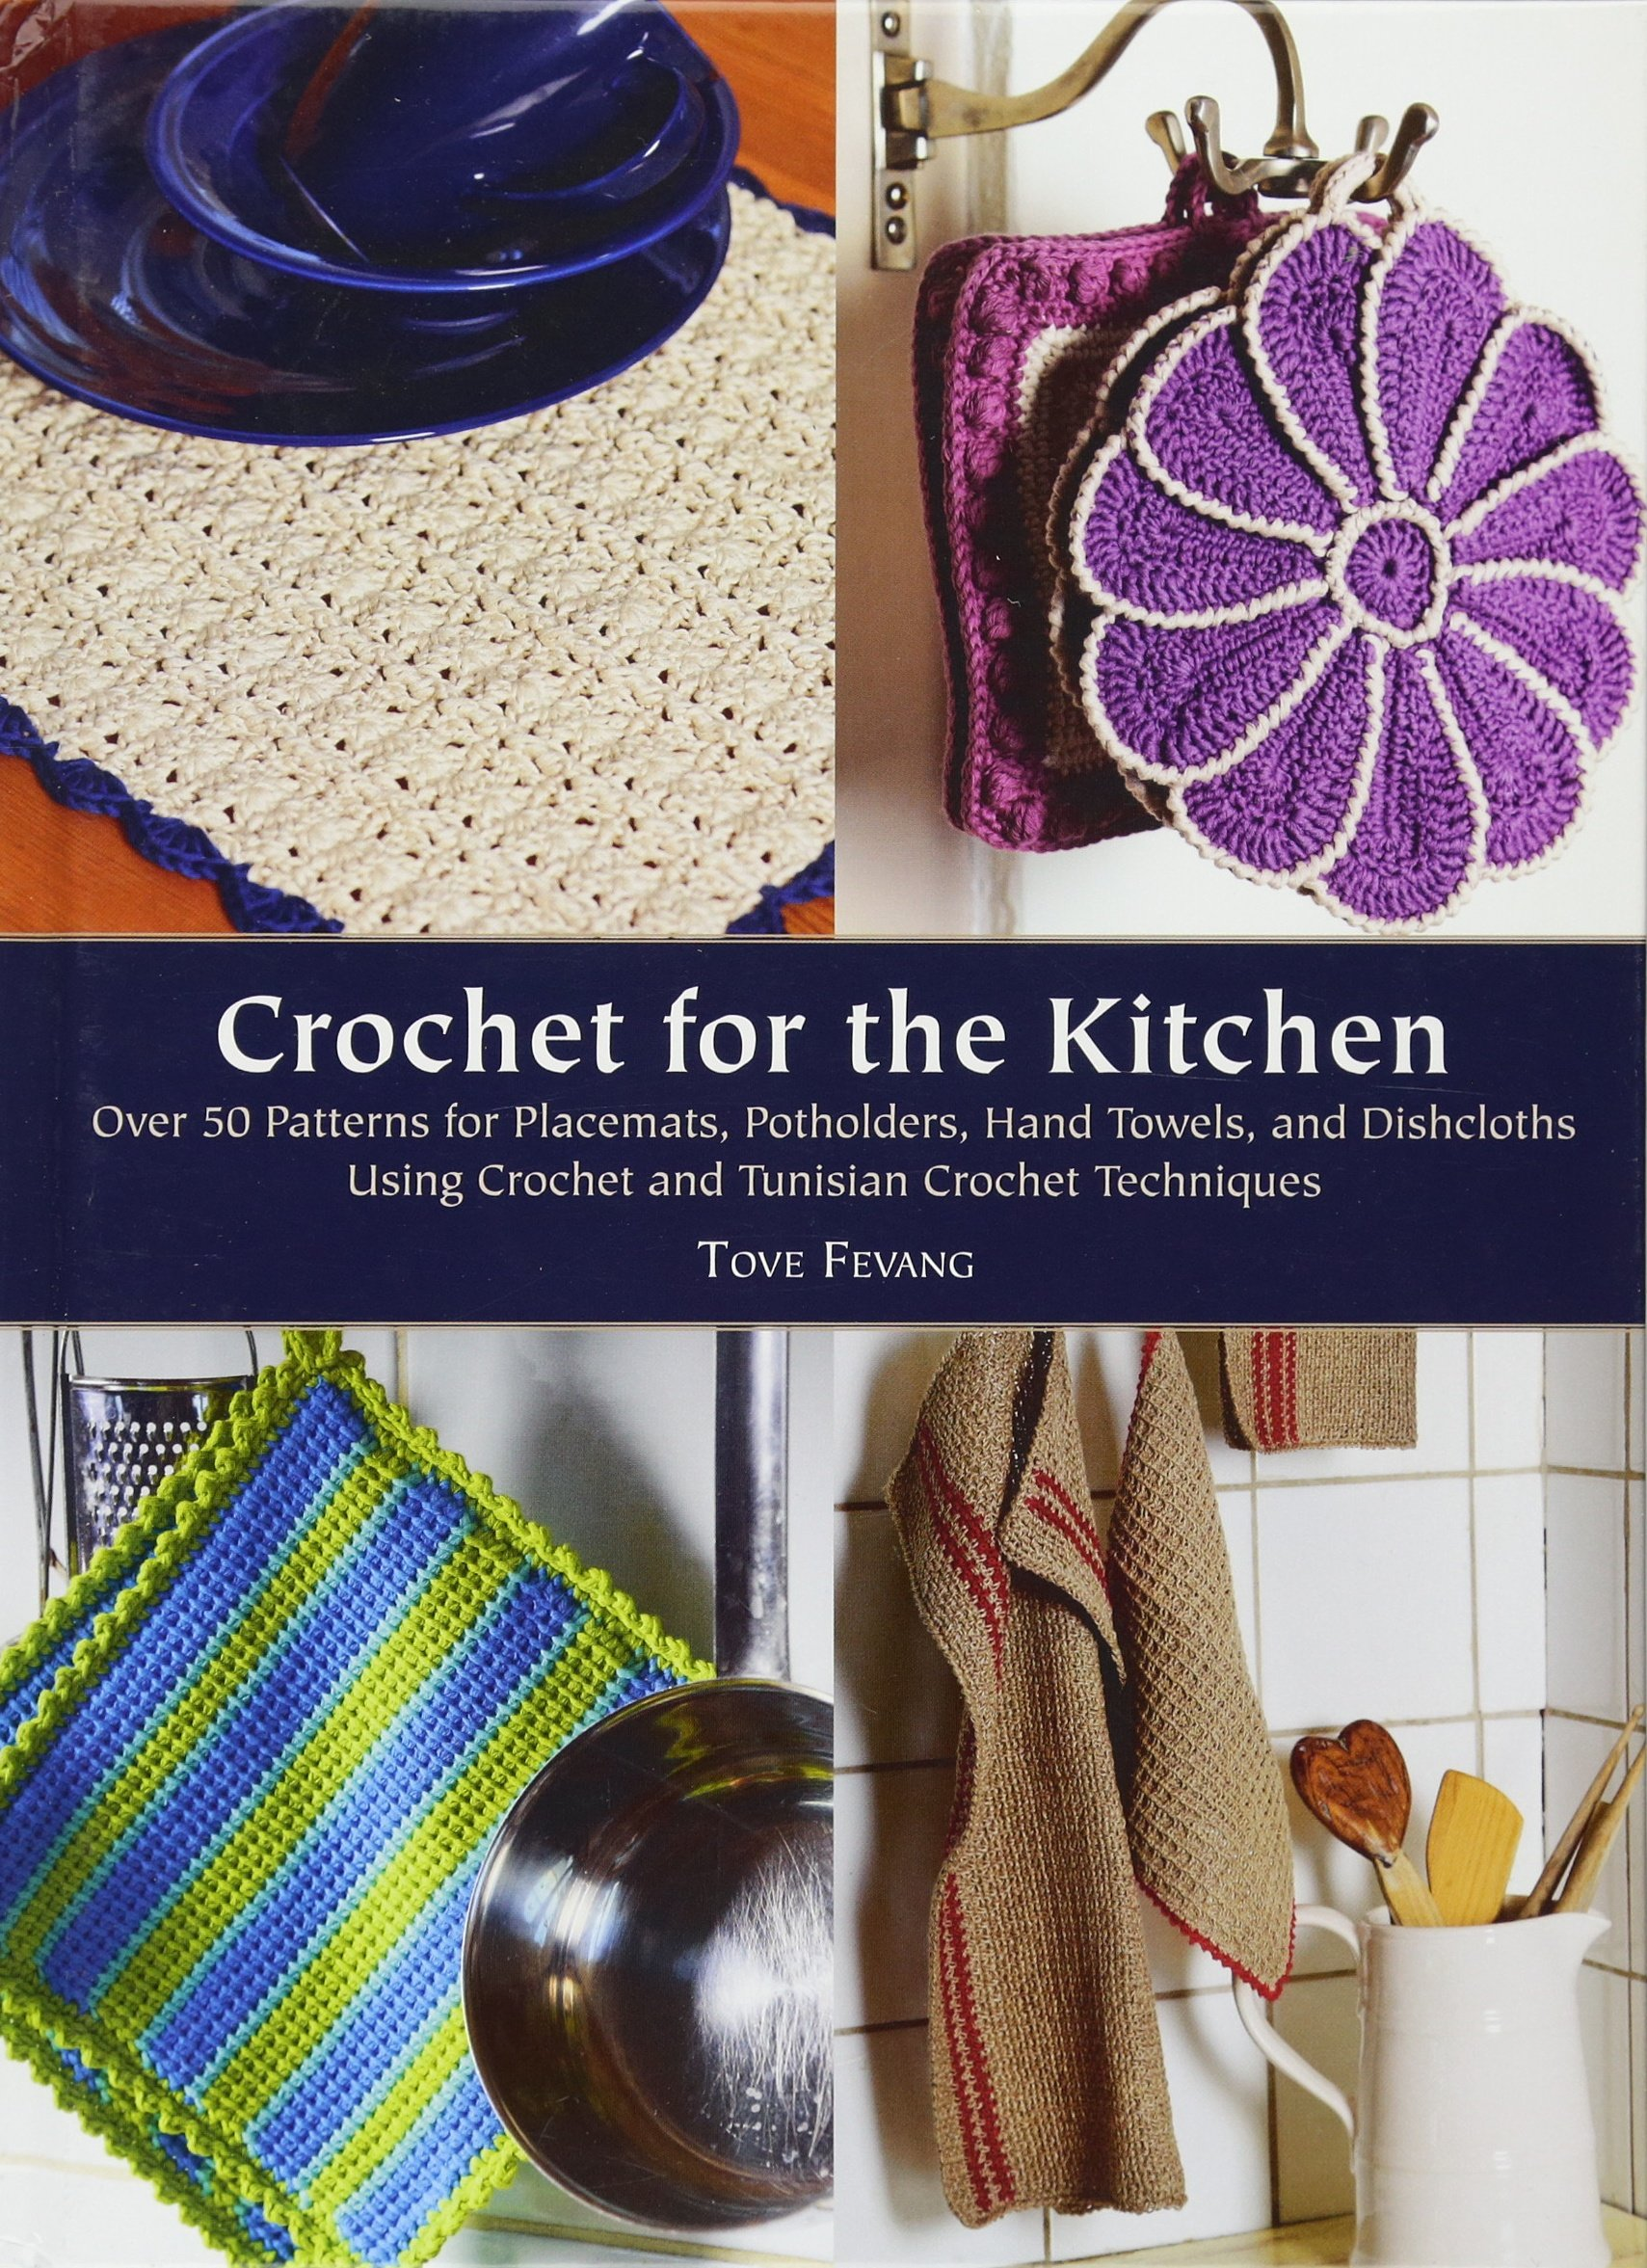 Crochet for the Kitchen: Over 50 Patterns for Placemats, Potholders ...